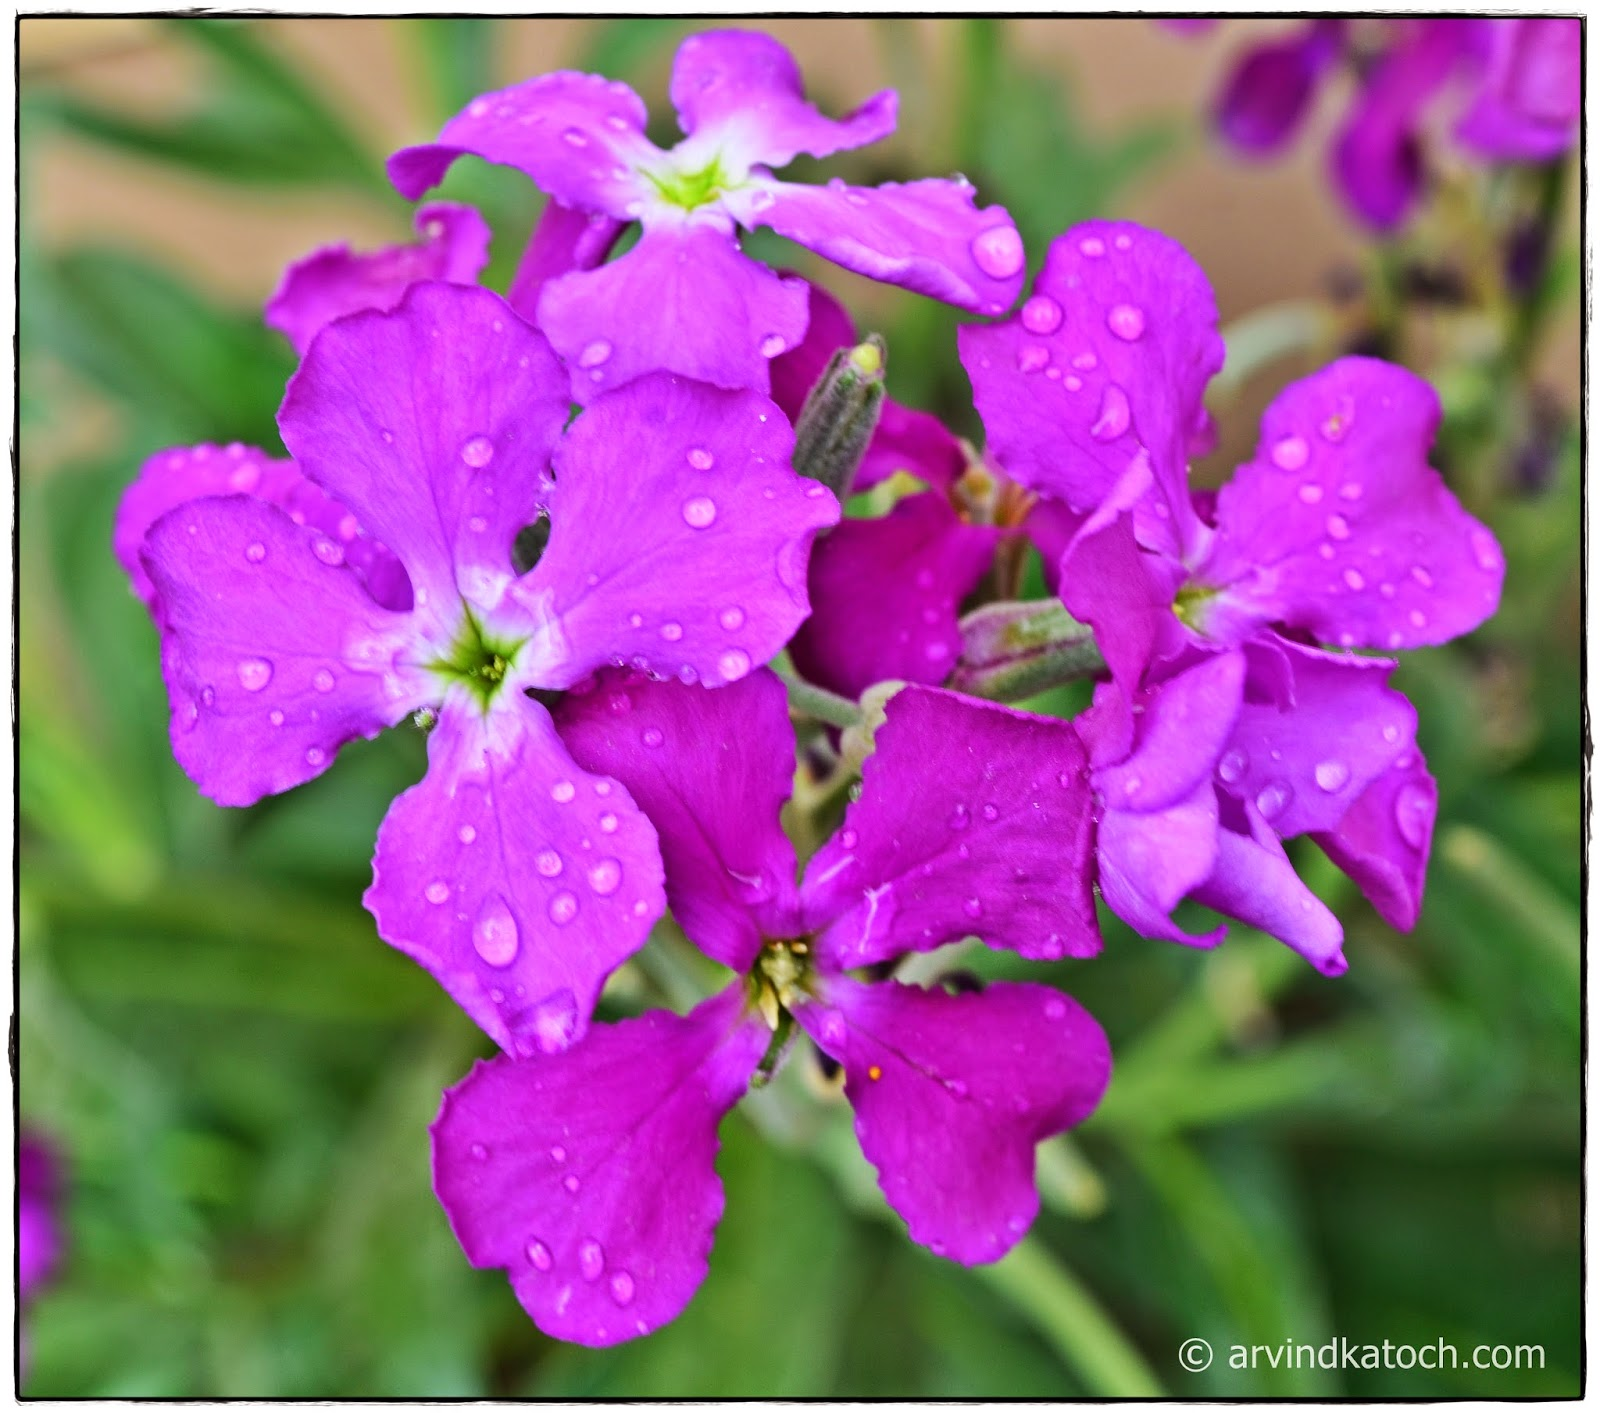 Rain, Flowers, Rain Drops, Blue Flower